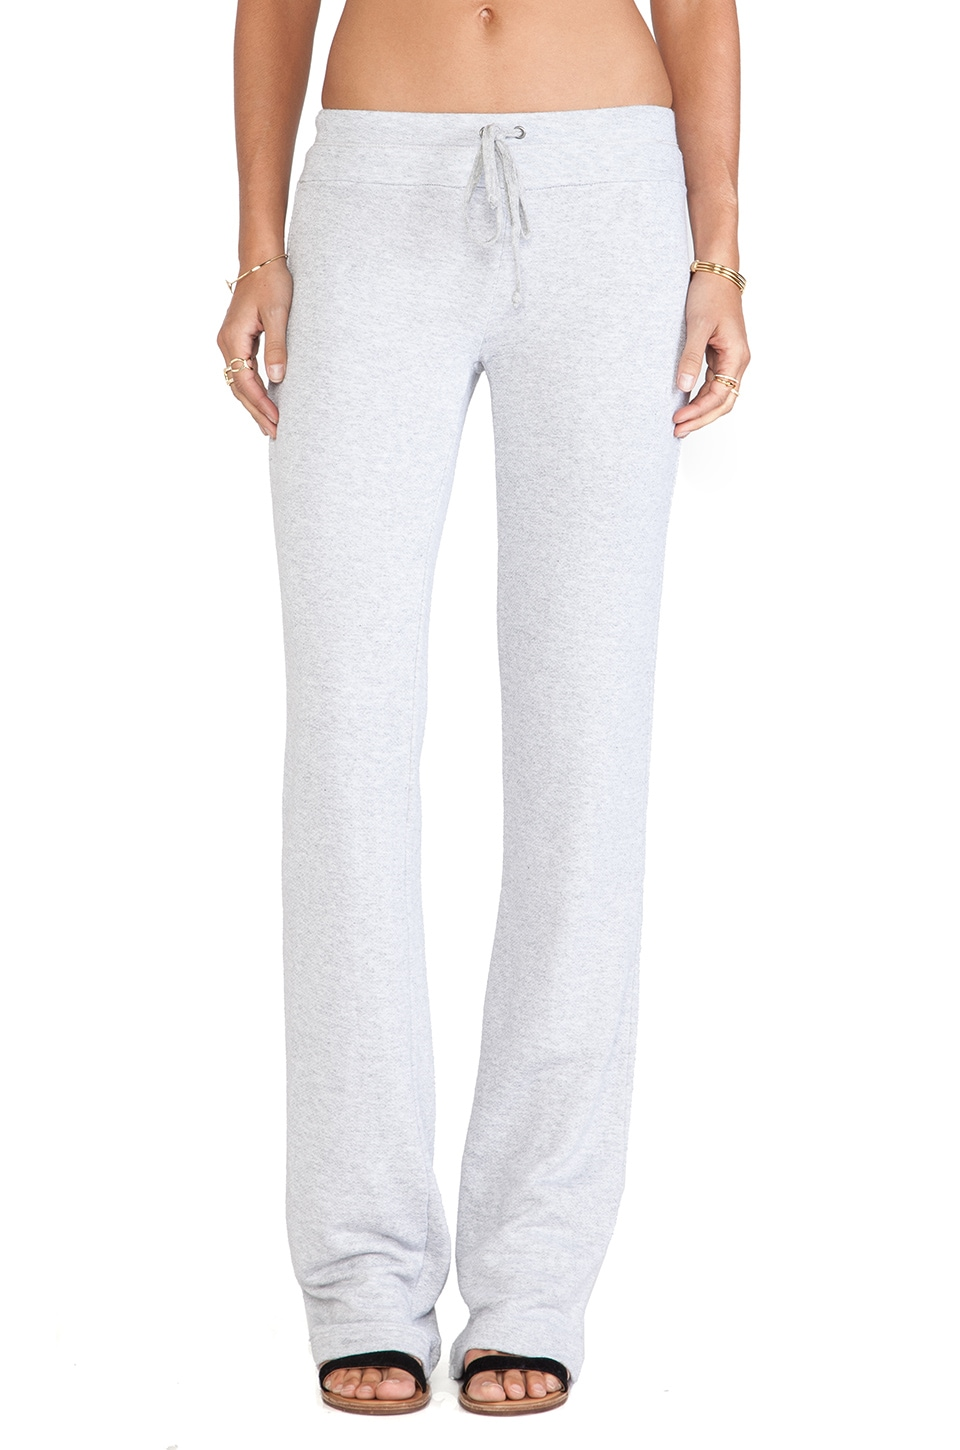 Splendid Flared Lounge Pants in Heather Grey